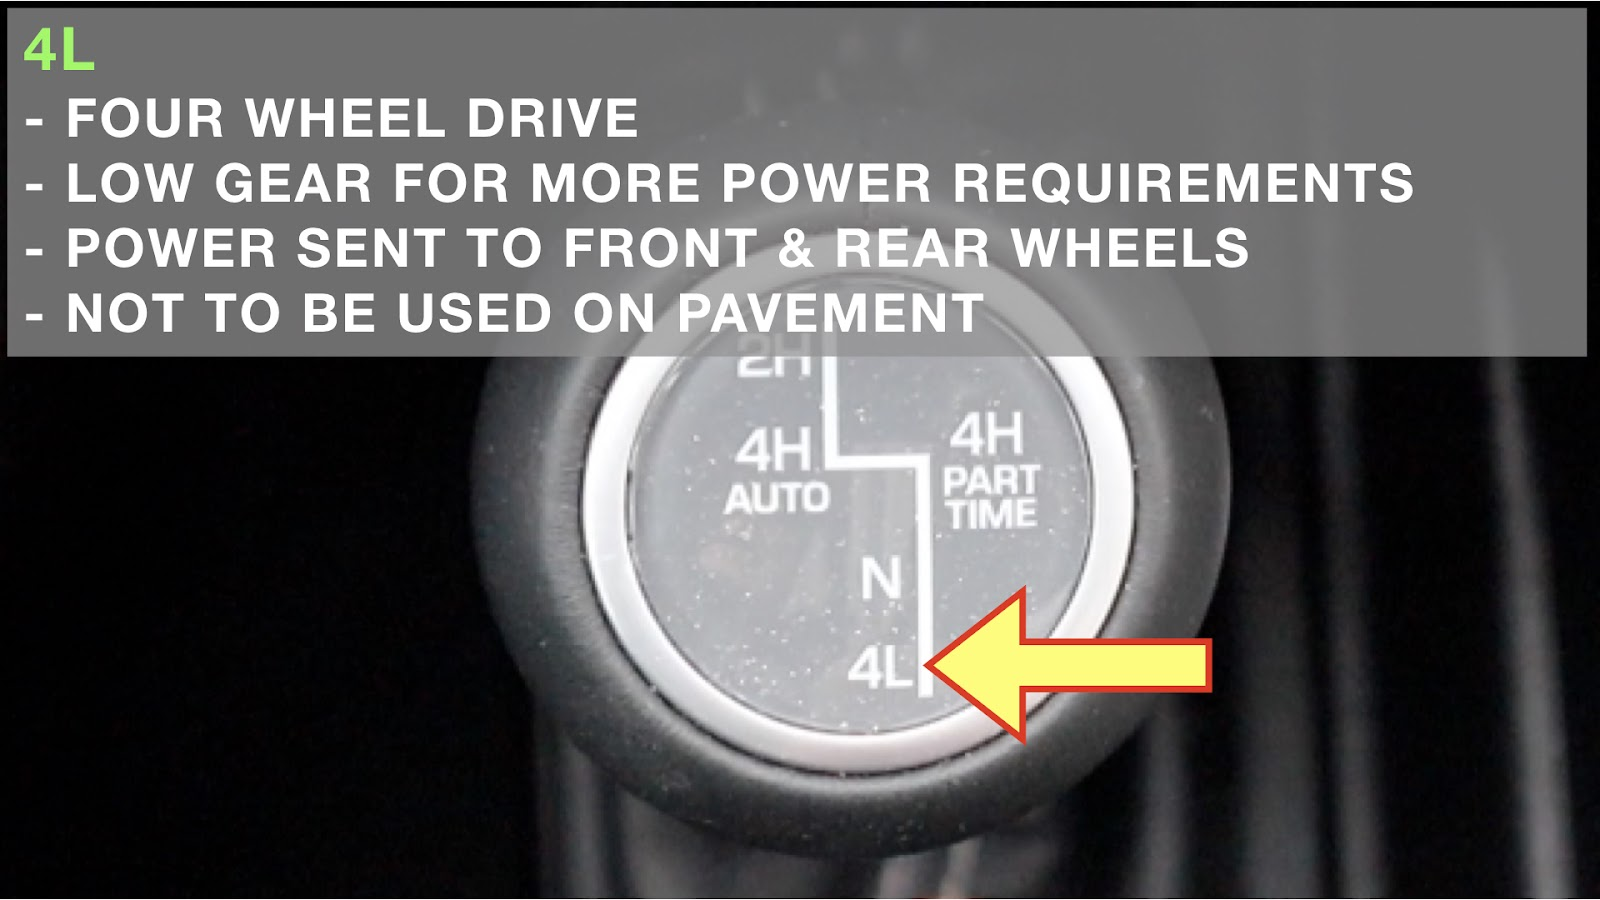 Image showing the 4L setting when using 4wd in a Jeep Wrangler